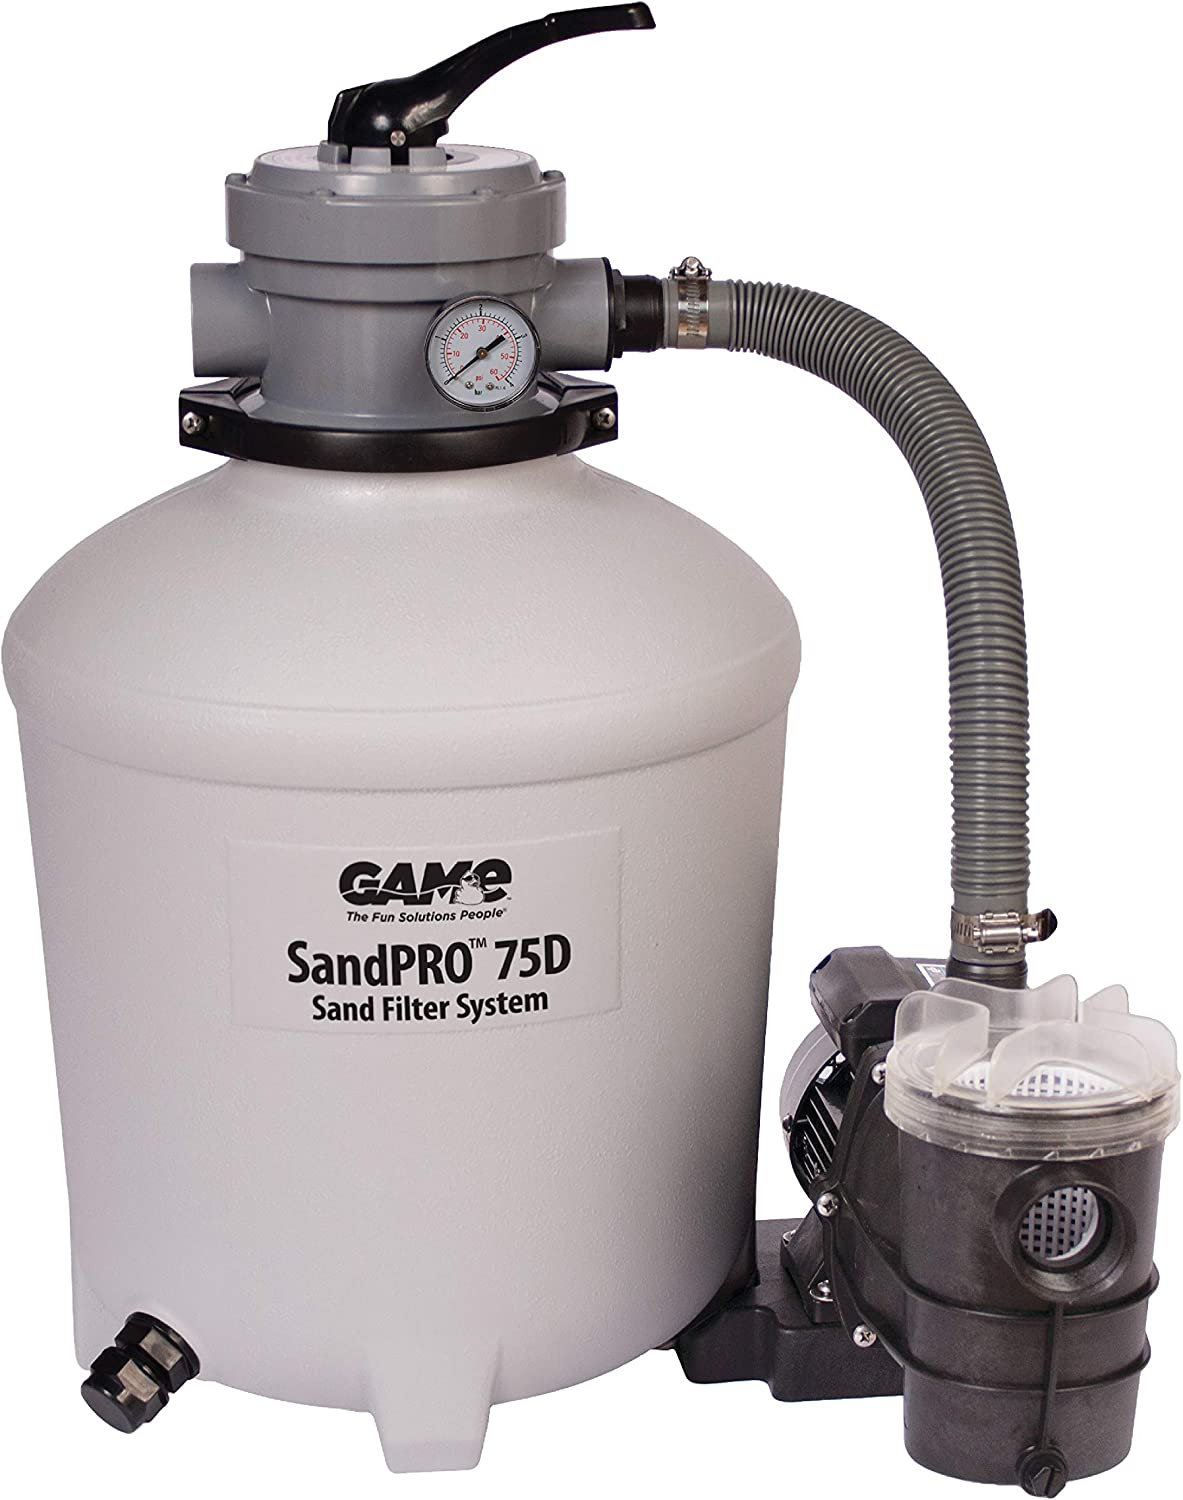 GAME SandPRO 75D Series, Complete 0.75HP Replacement Pool Sand Filter Unit, Designed for Intex & Bestway Pools, High-Performance Above-Ground Pool Vacuum, Energy Efficient, Easy to Operate